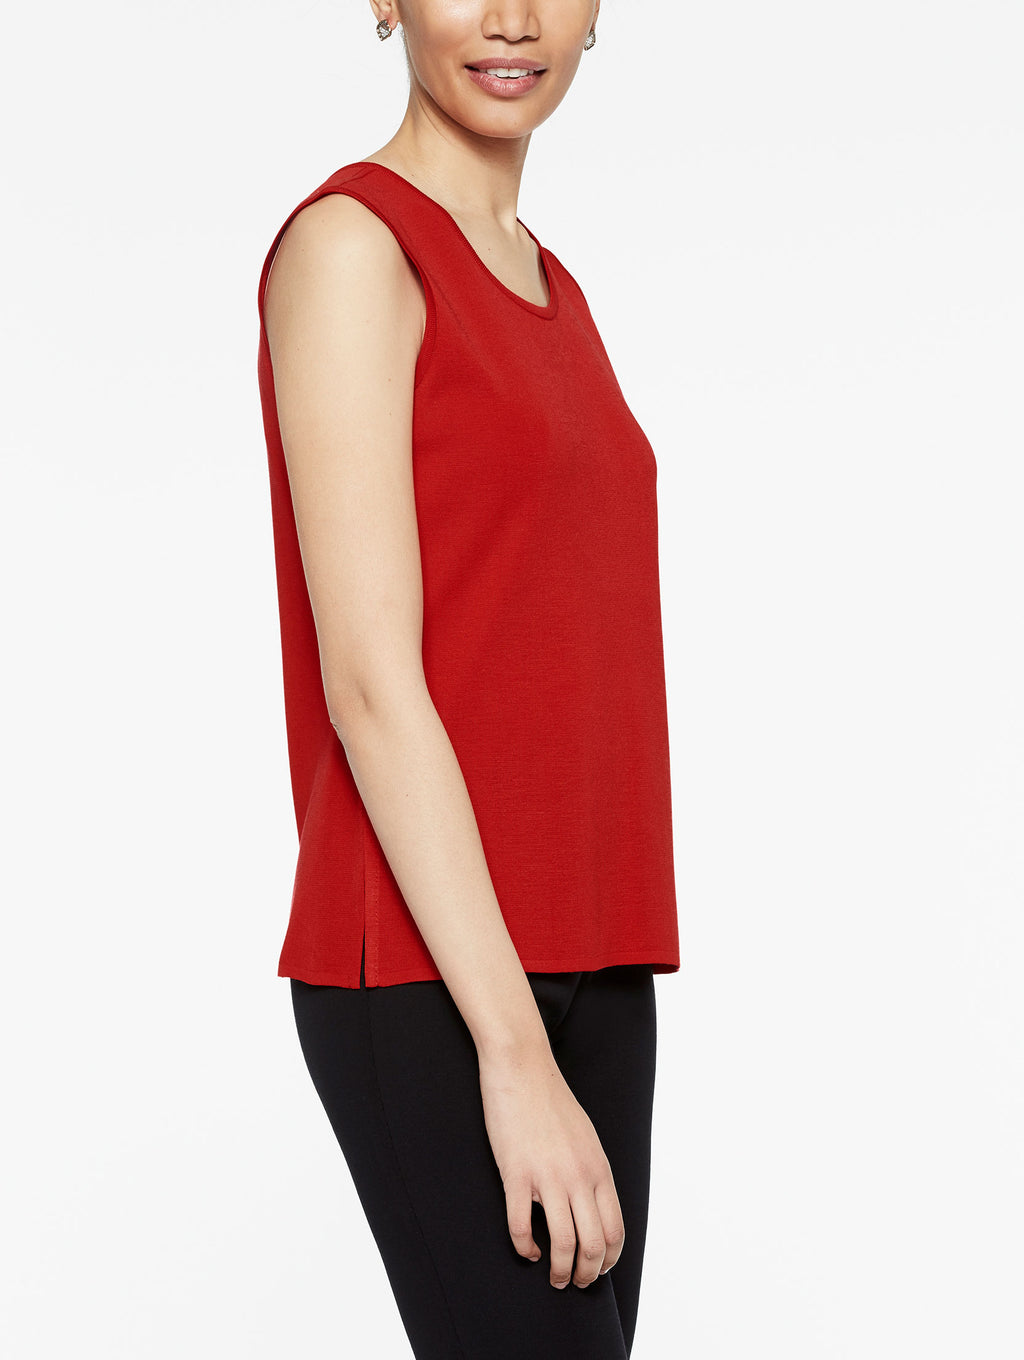 Tango Red Classic Knit Scoop Neck Tank Top Color Tango Red